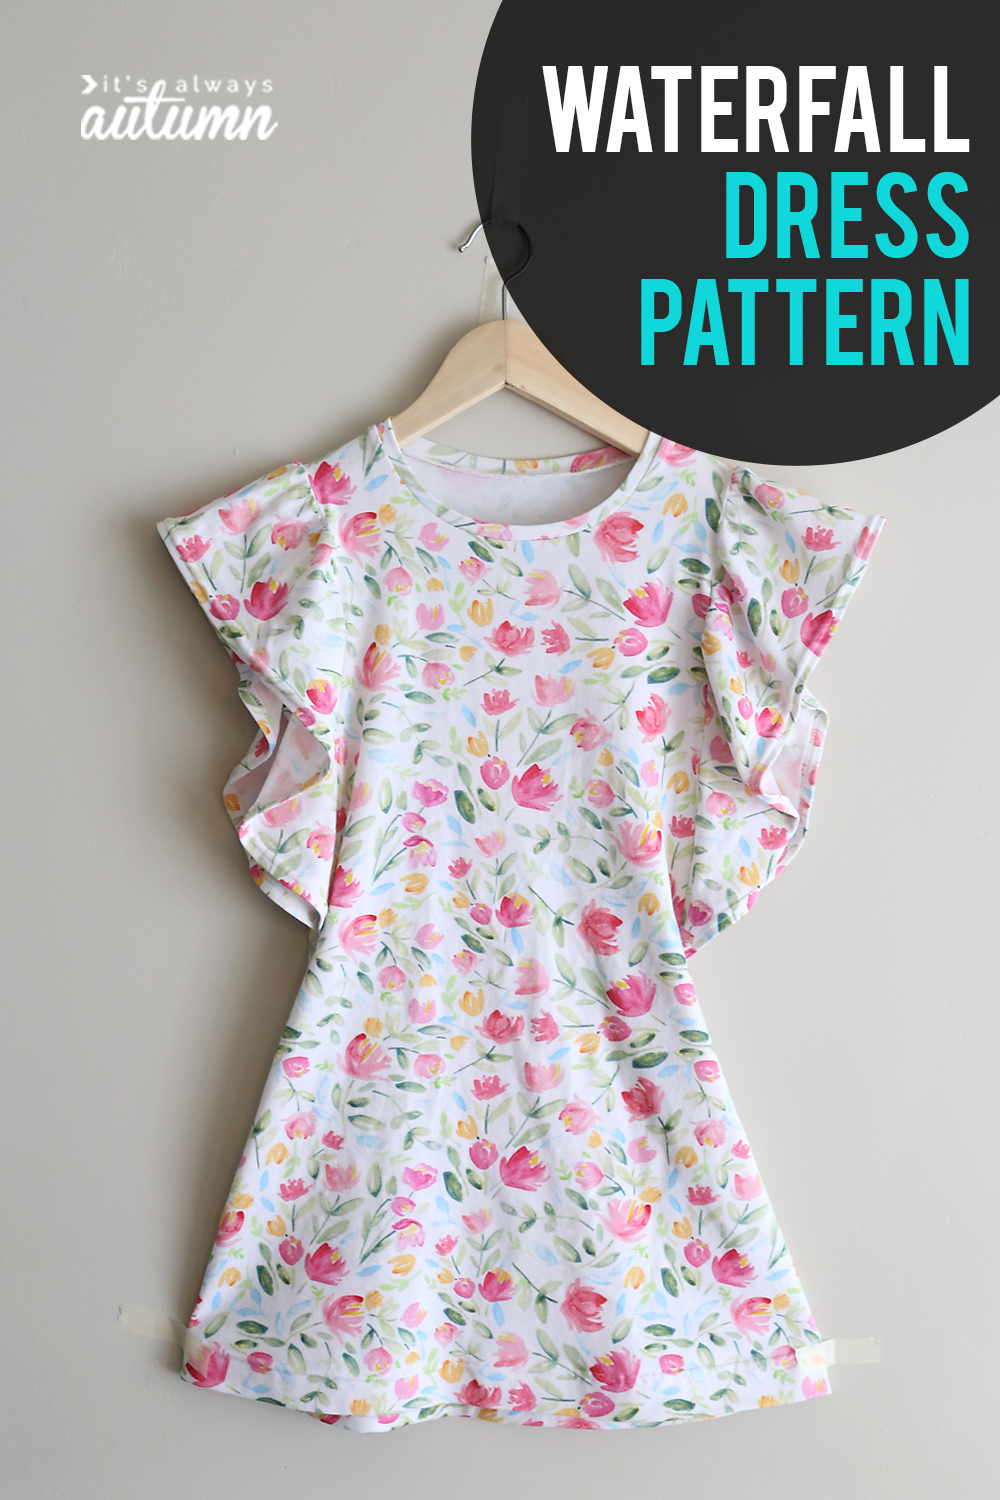 Cute girl's dress sewing pattern! How to sew a girls dress with ruffled waterfall sleeves.